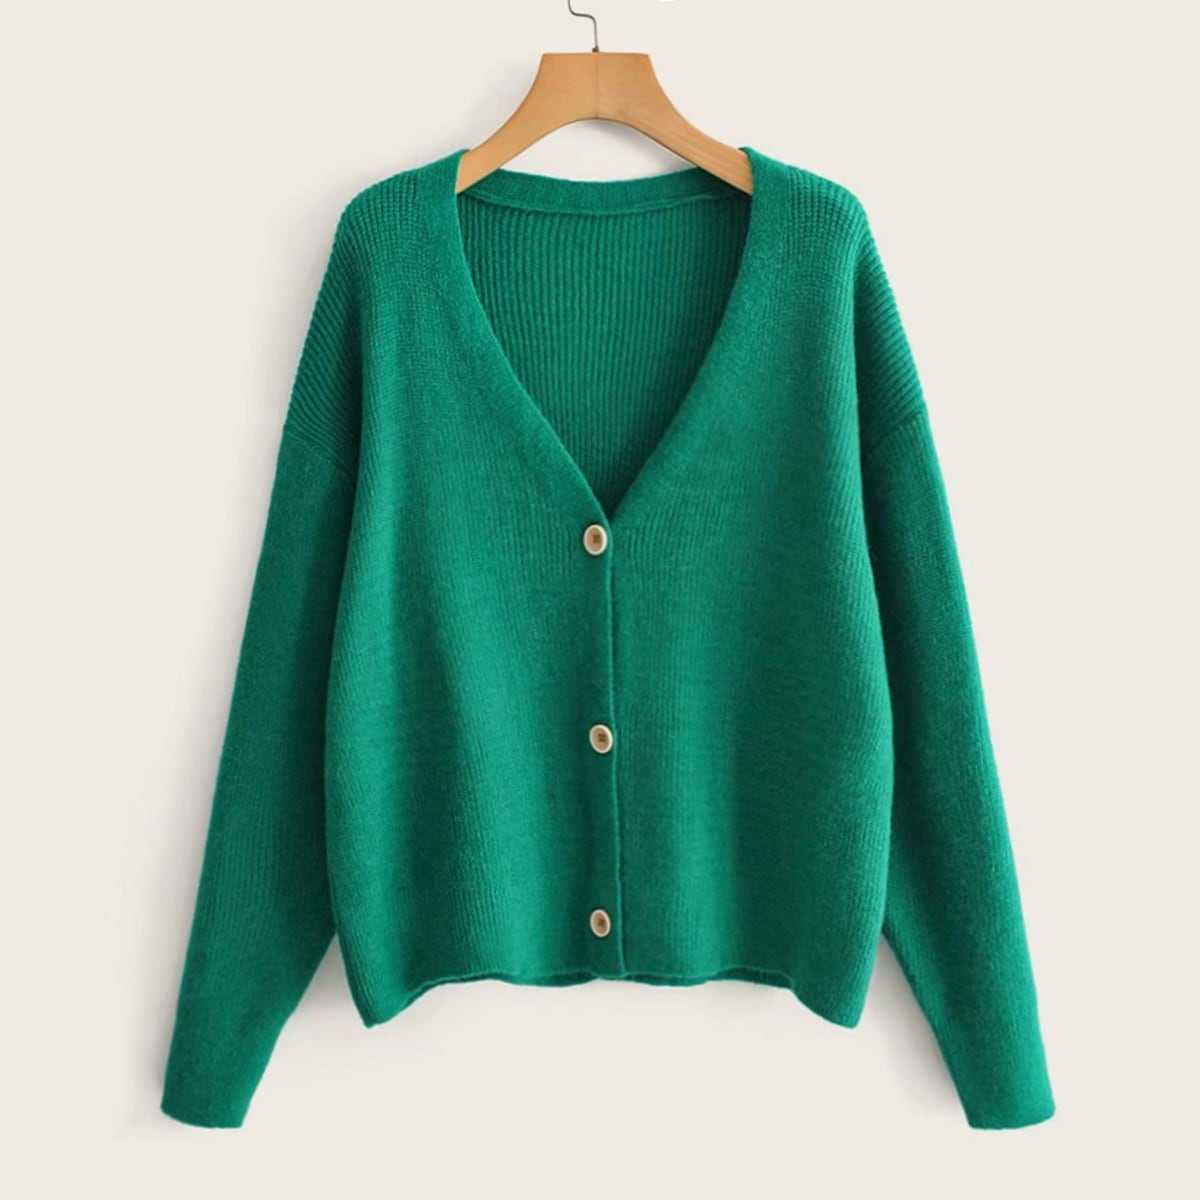 Solid Drop Shoulder Single Breasted Cardigan in Green by ROMWE on GOOFASH